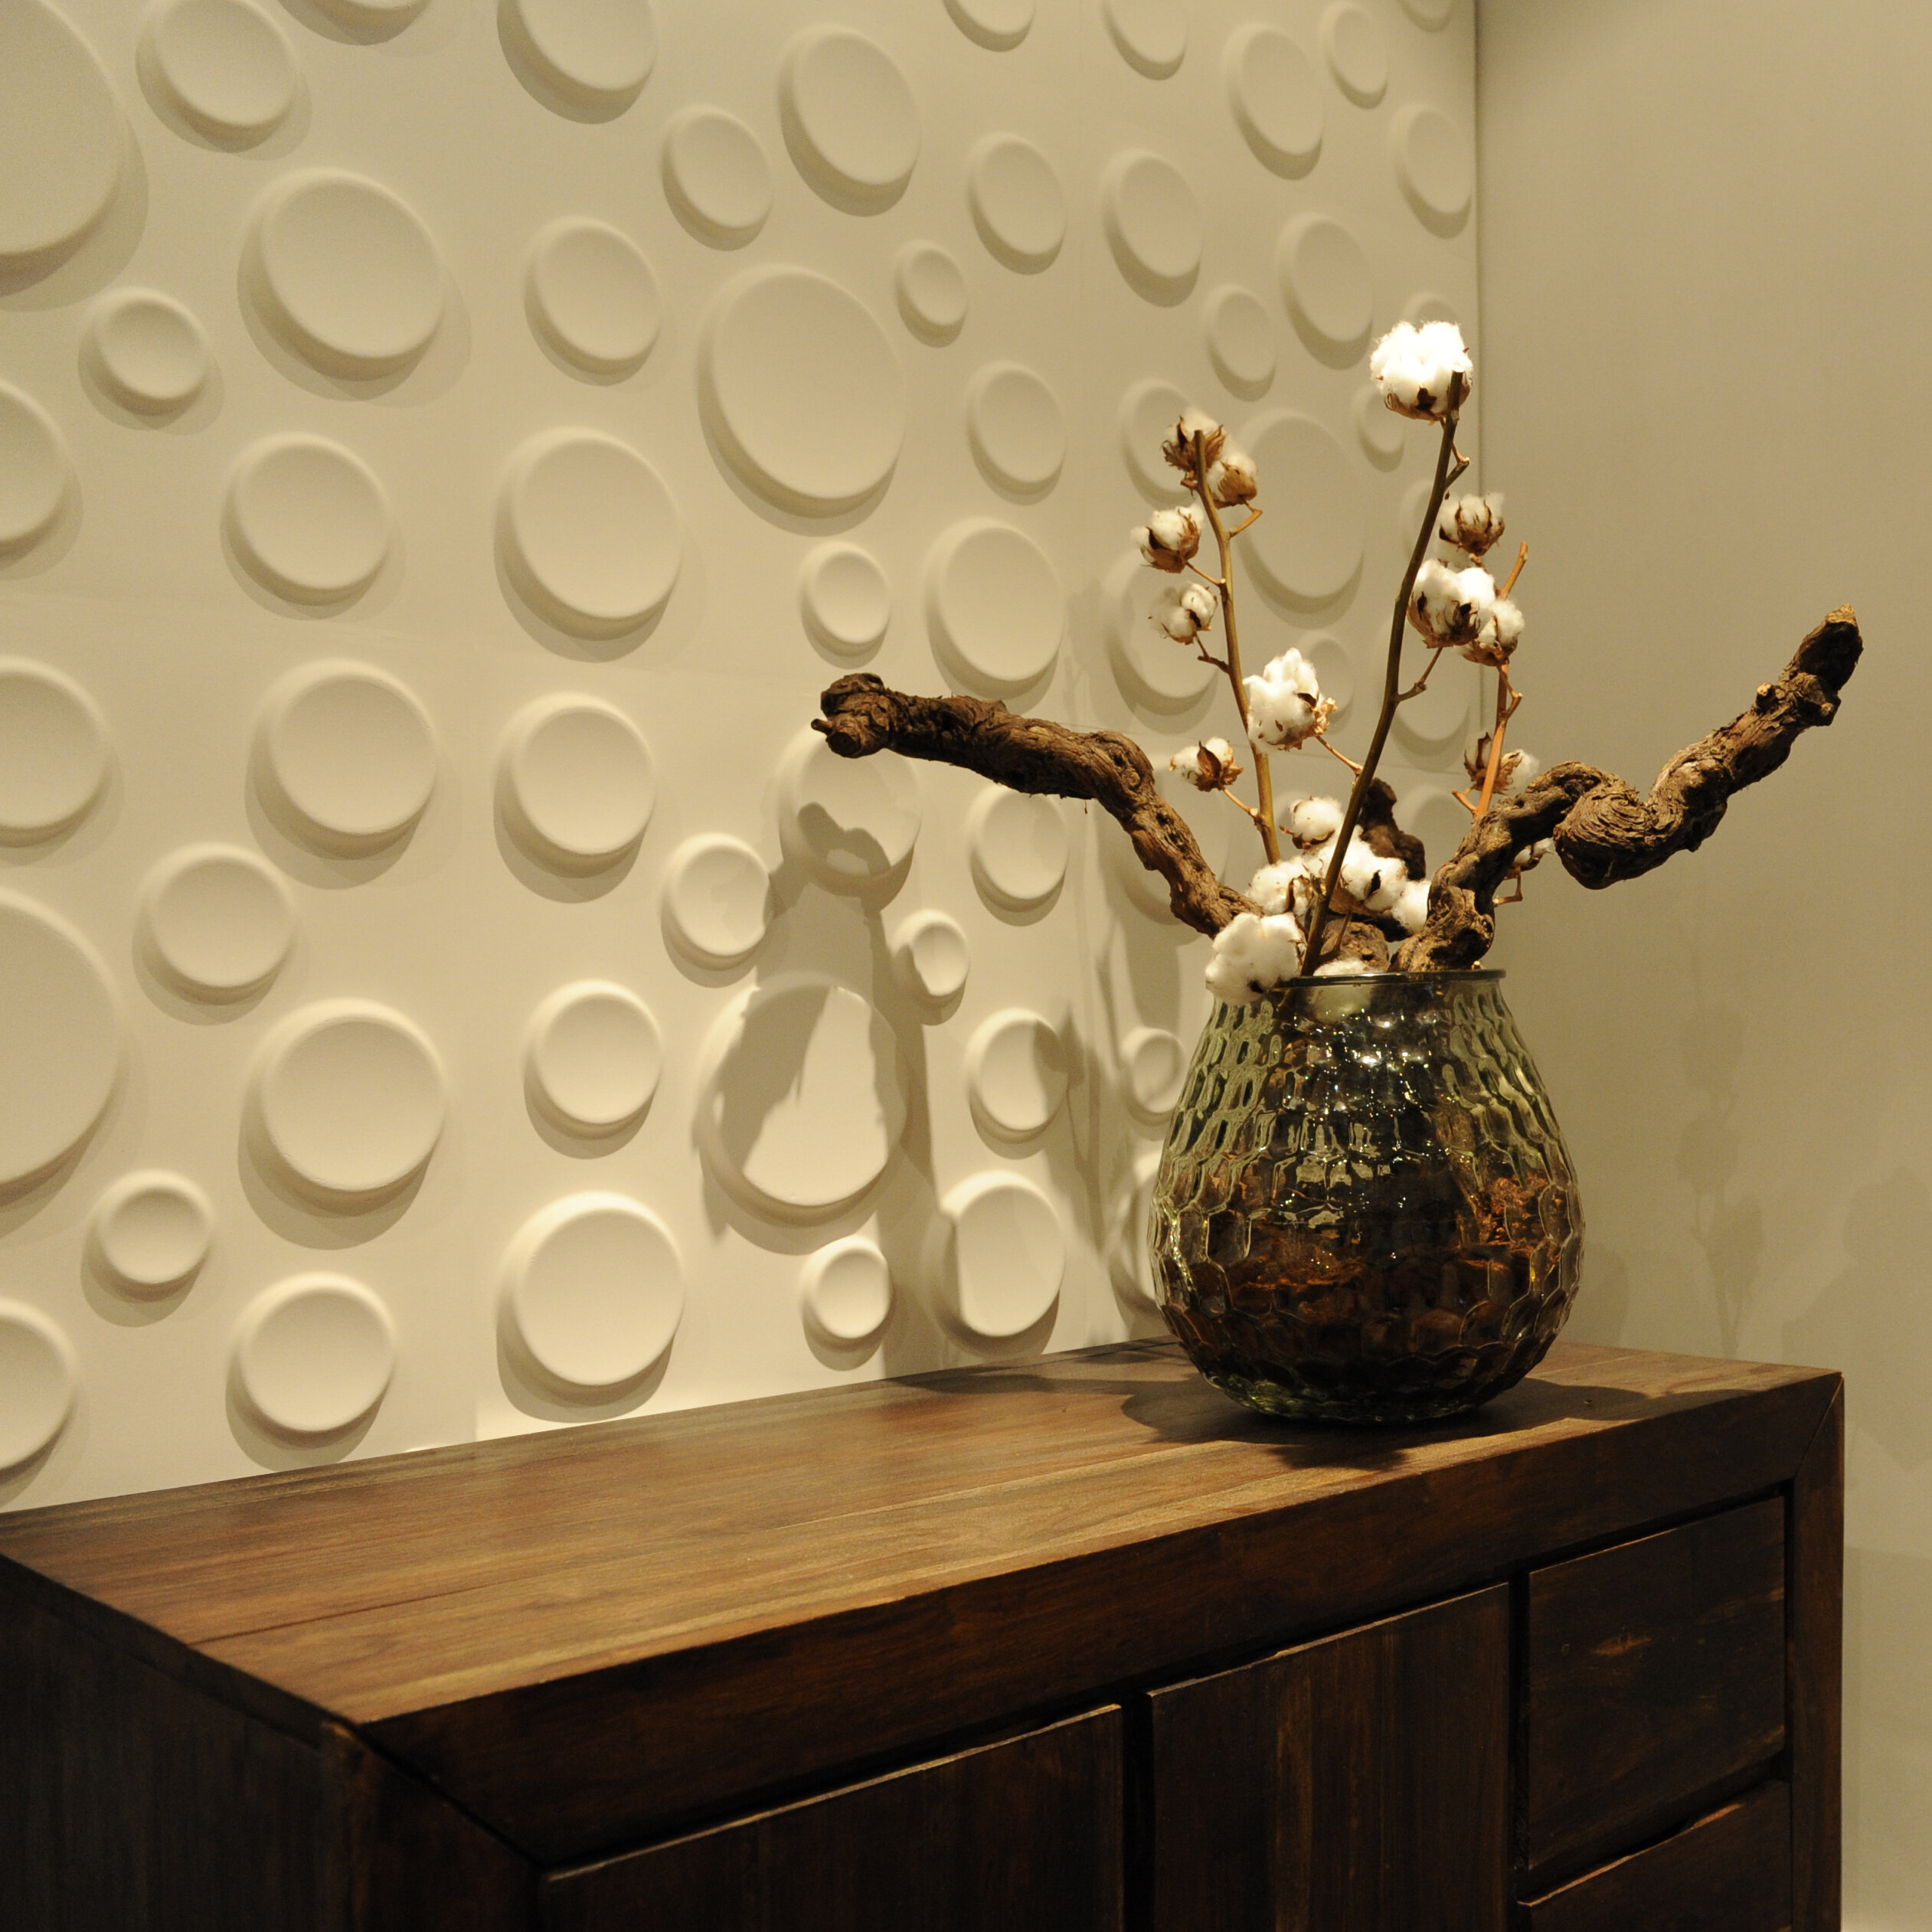 Decor Wonderland Craters 3D Decorative Wall Panels | Wayfair